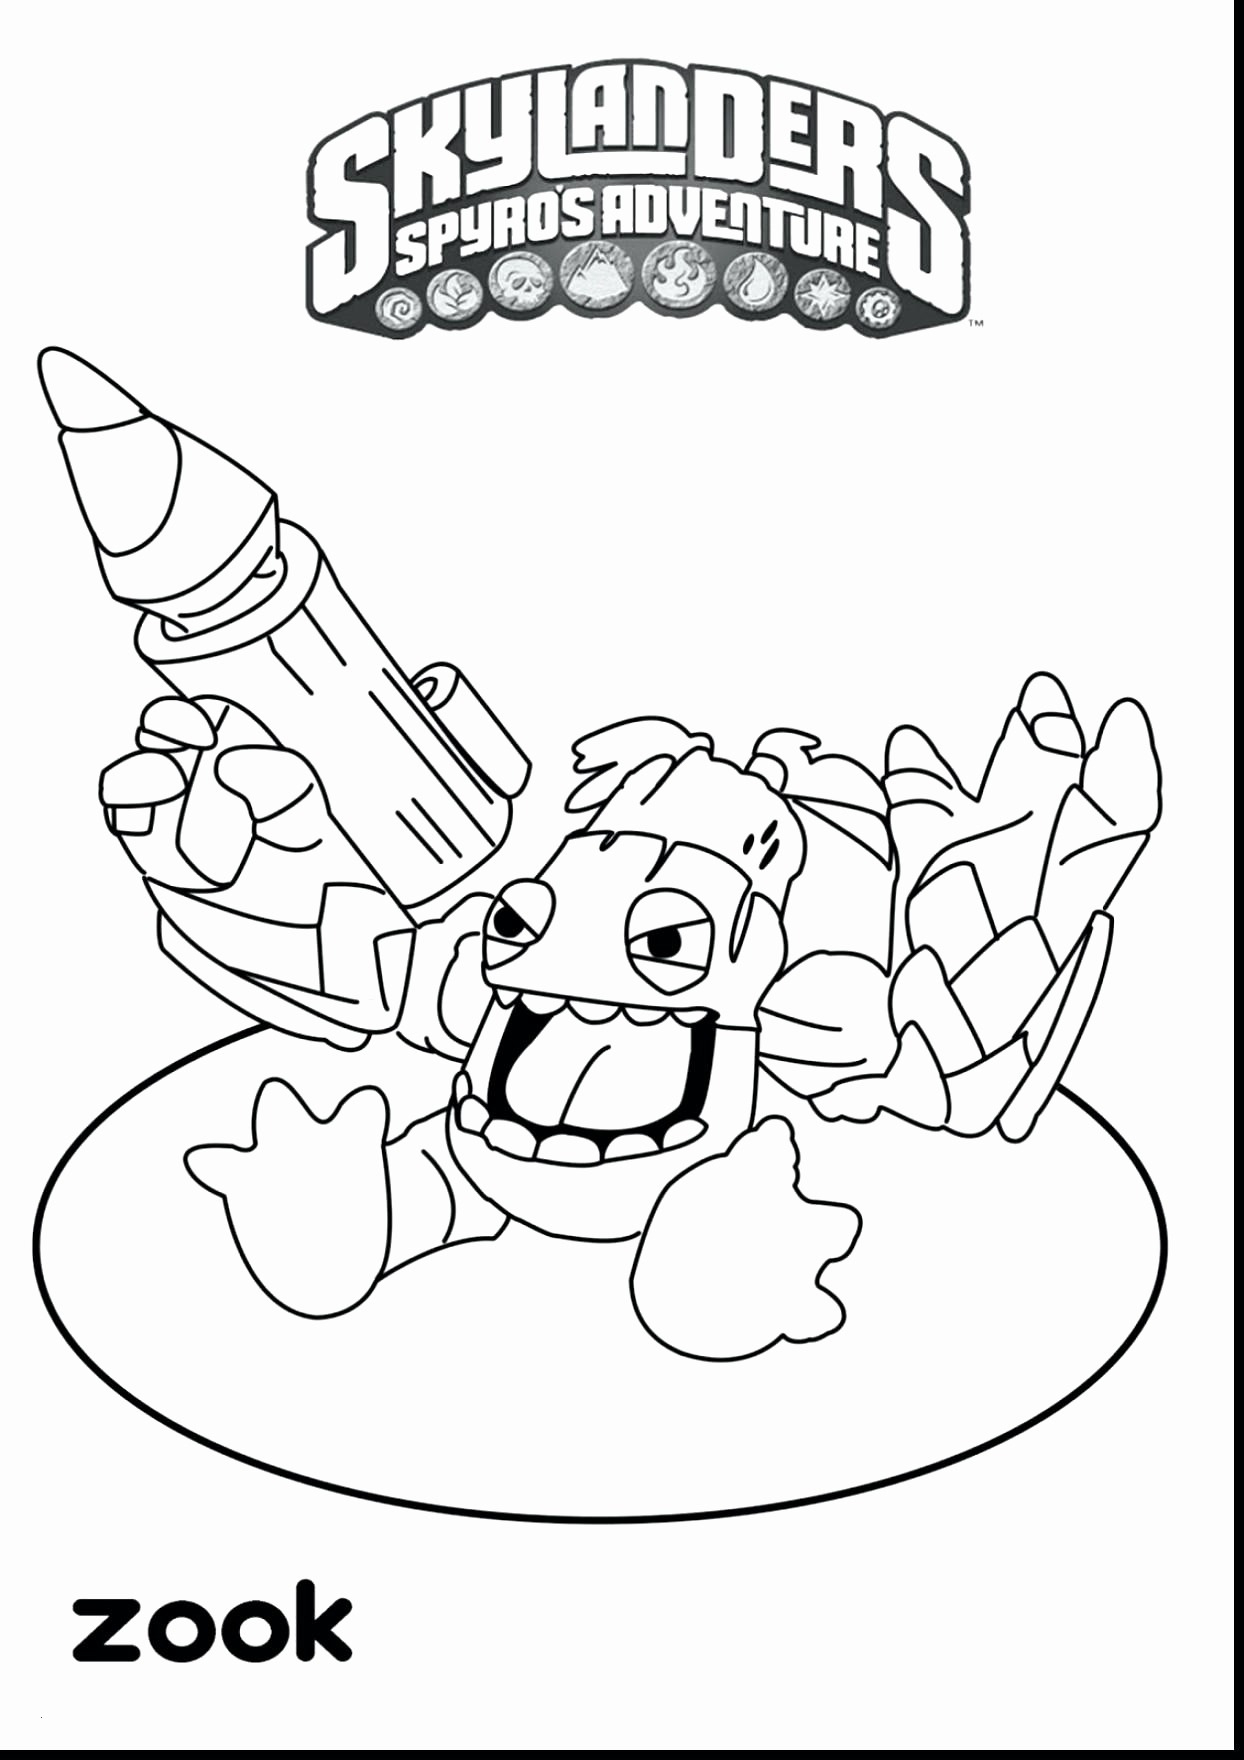 Link Coloring Pages  Download 1i - Free For kids